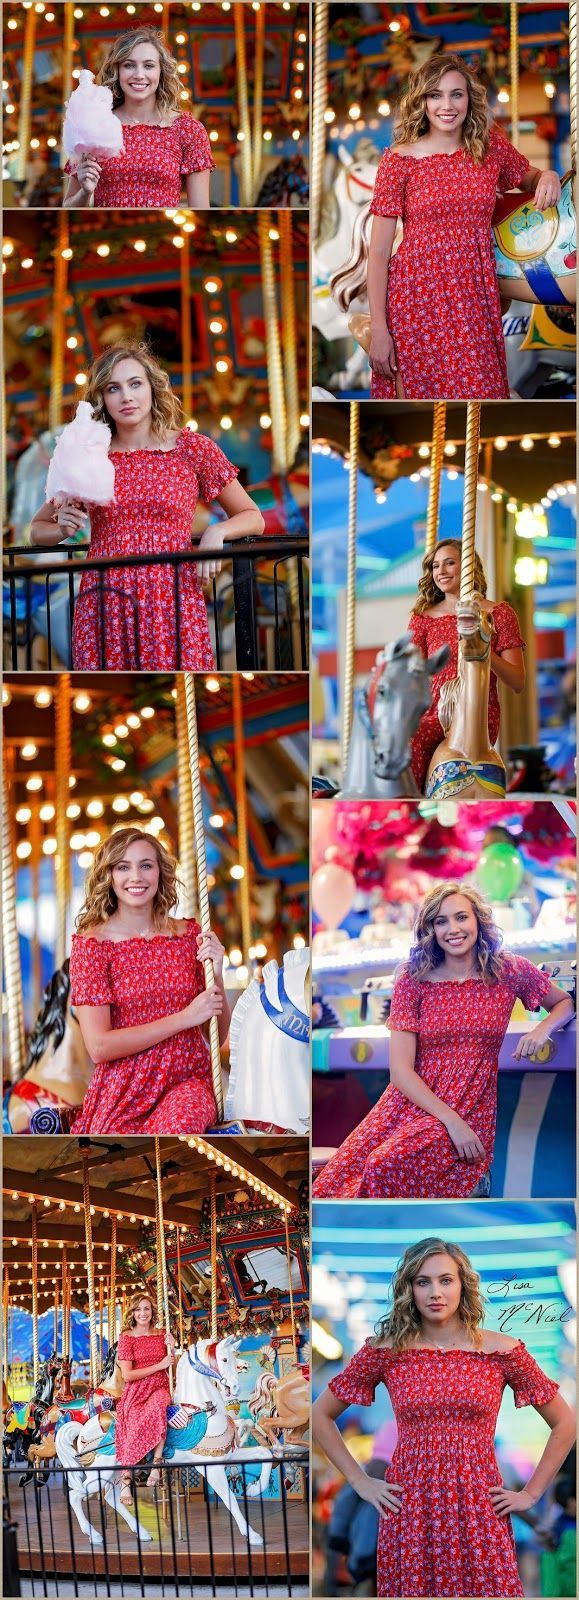 Gorgeous Flower Mound Senior - Pictures at the Texas State Fair - by Flower Mound Photographer Lisa McNielBasketball Senior Pictures for Westlake Trophy Club by Photographer Lisa McNielSenior Pictures of a Drummer - by Flower Mound Photographer Lisa McNielValentine Fashion - What to Wear for the Teen - Senior Photographer Dallas - Lisa McNiel #fashionphotographyposes